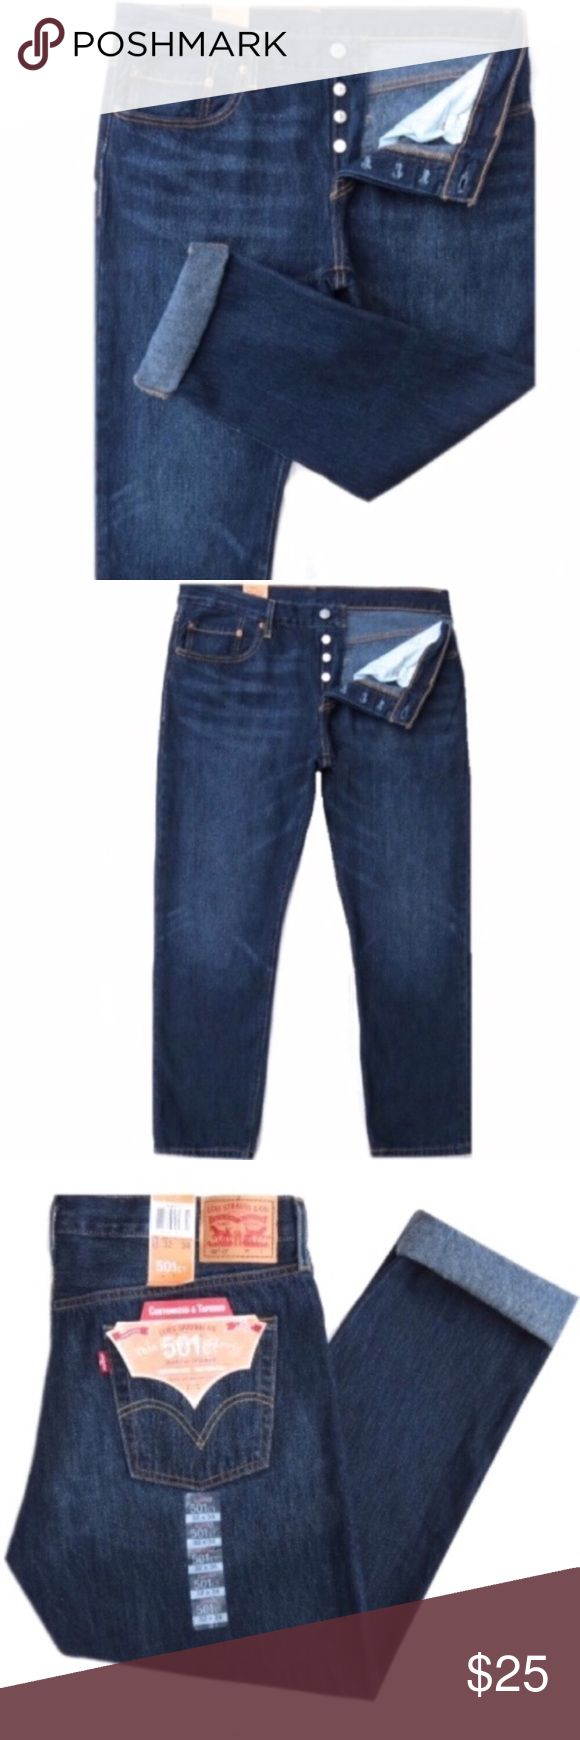 """NWT Levi's 501 CT Women's Button Fly Jeans Brand new with tags Levi's 501 CT womens button fly jeans. Dark blue wash. Button fly. Cotton. Size 31 by 34. They have a 10"""" rise and 31"""" inseam. Very nice! Levi's Jeans"""